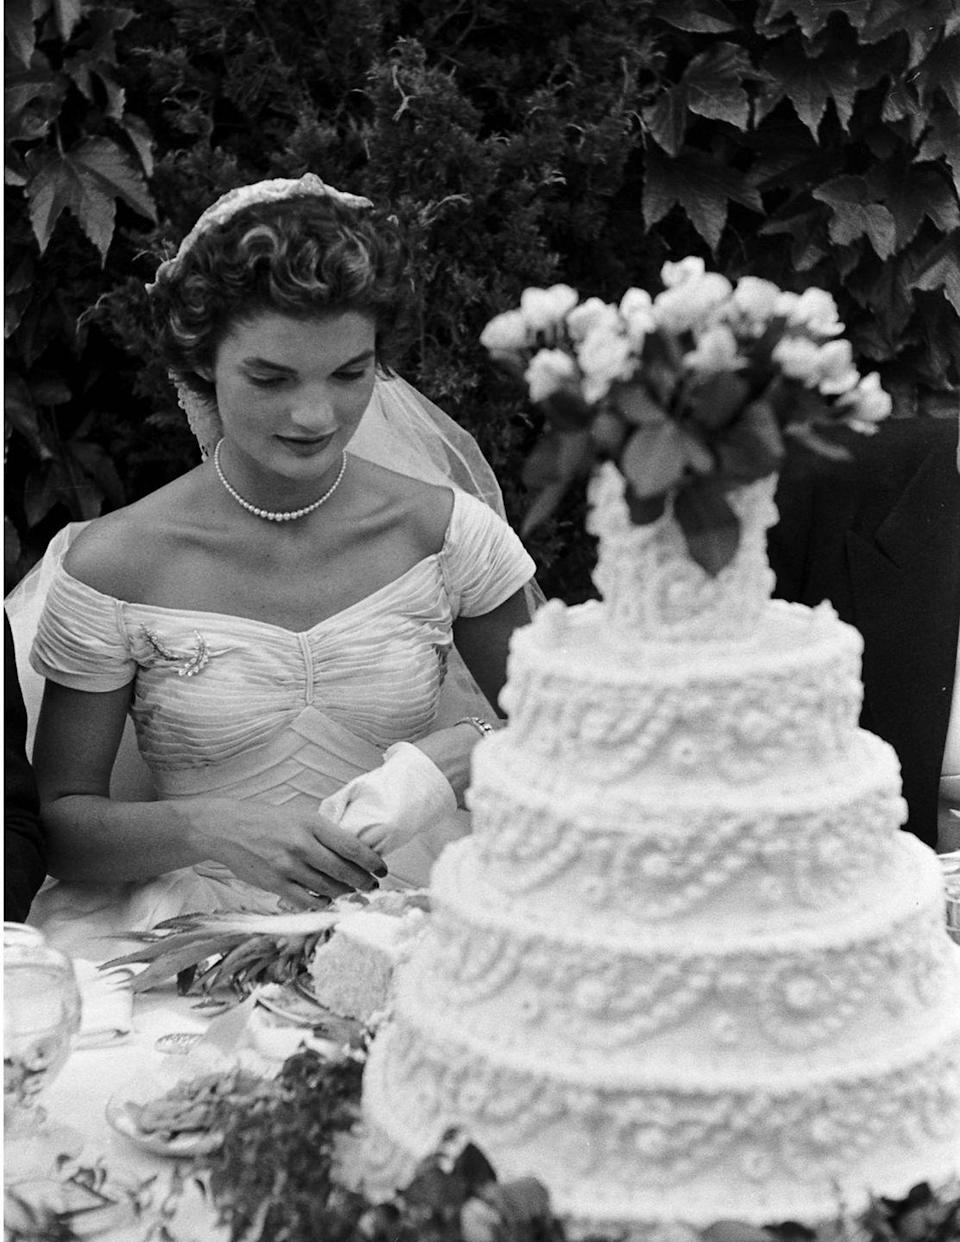 <p>The bride removed her gloves to prepare to cut the cake.</p>